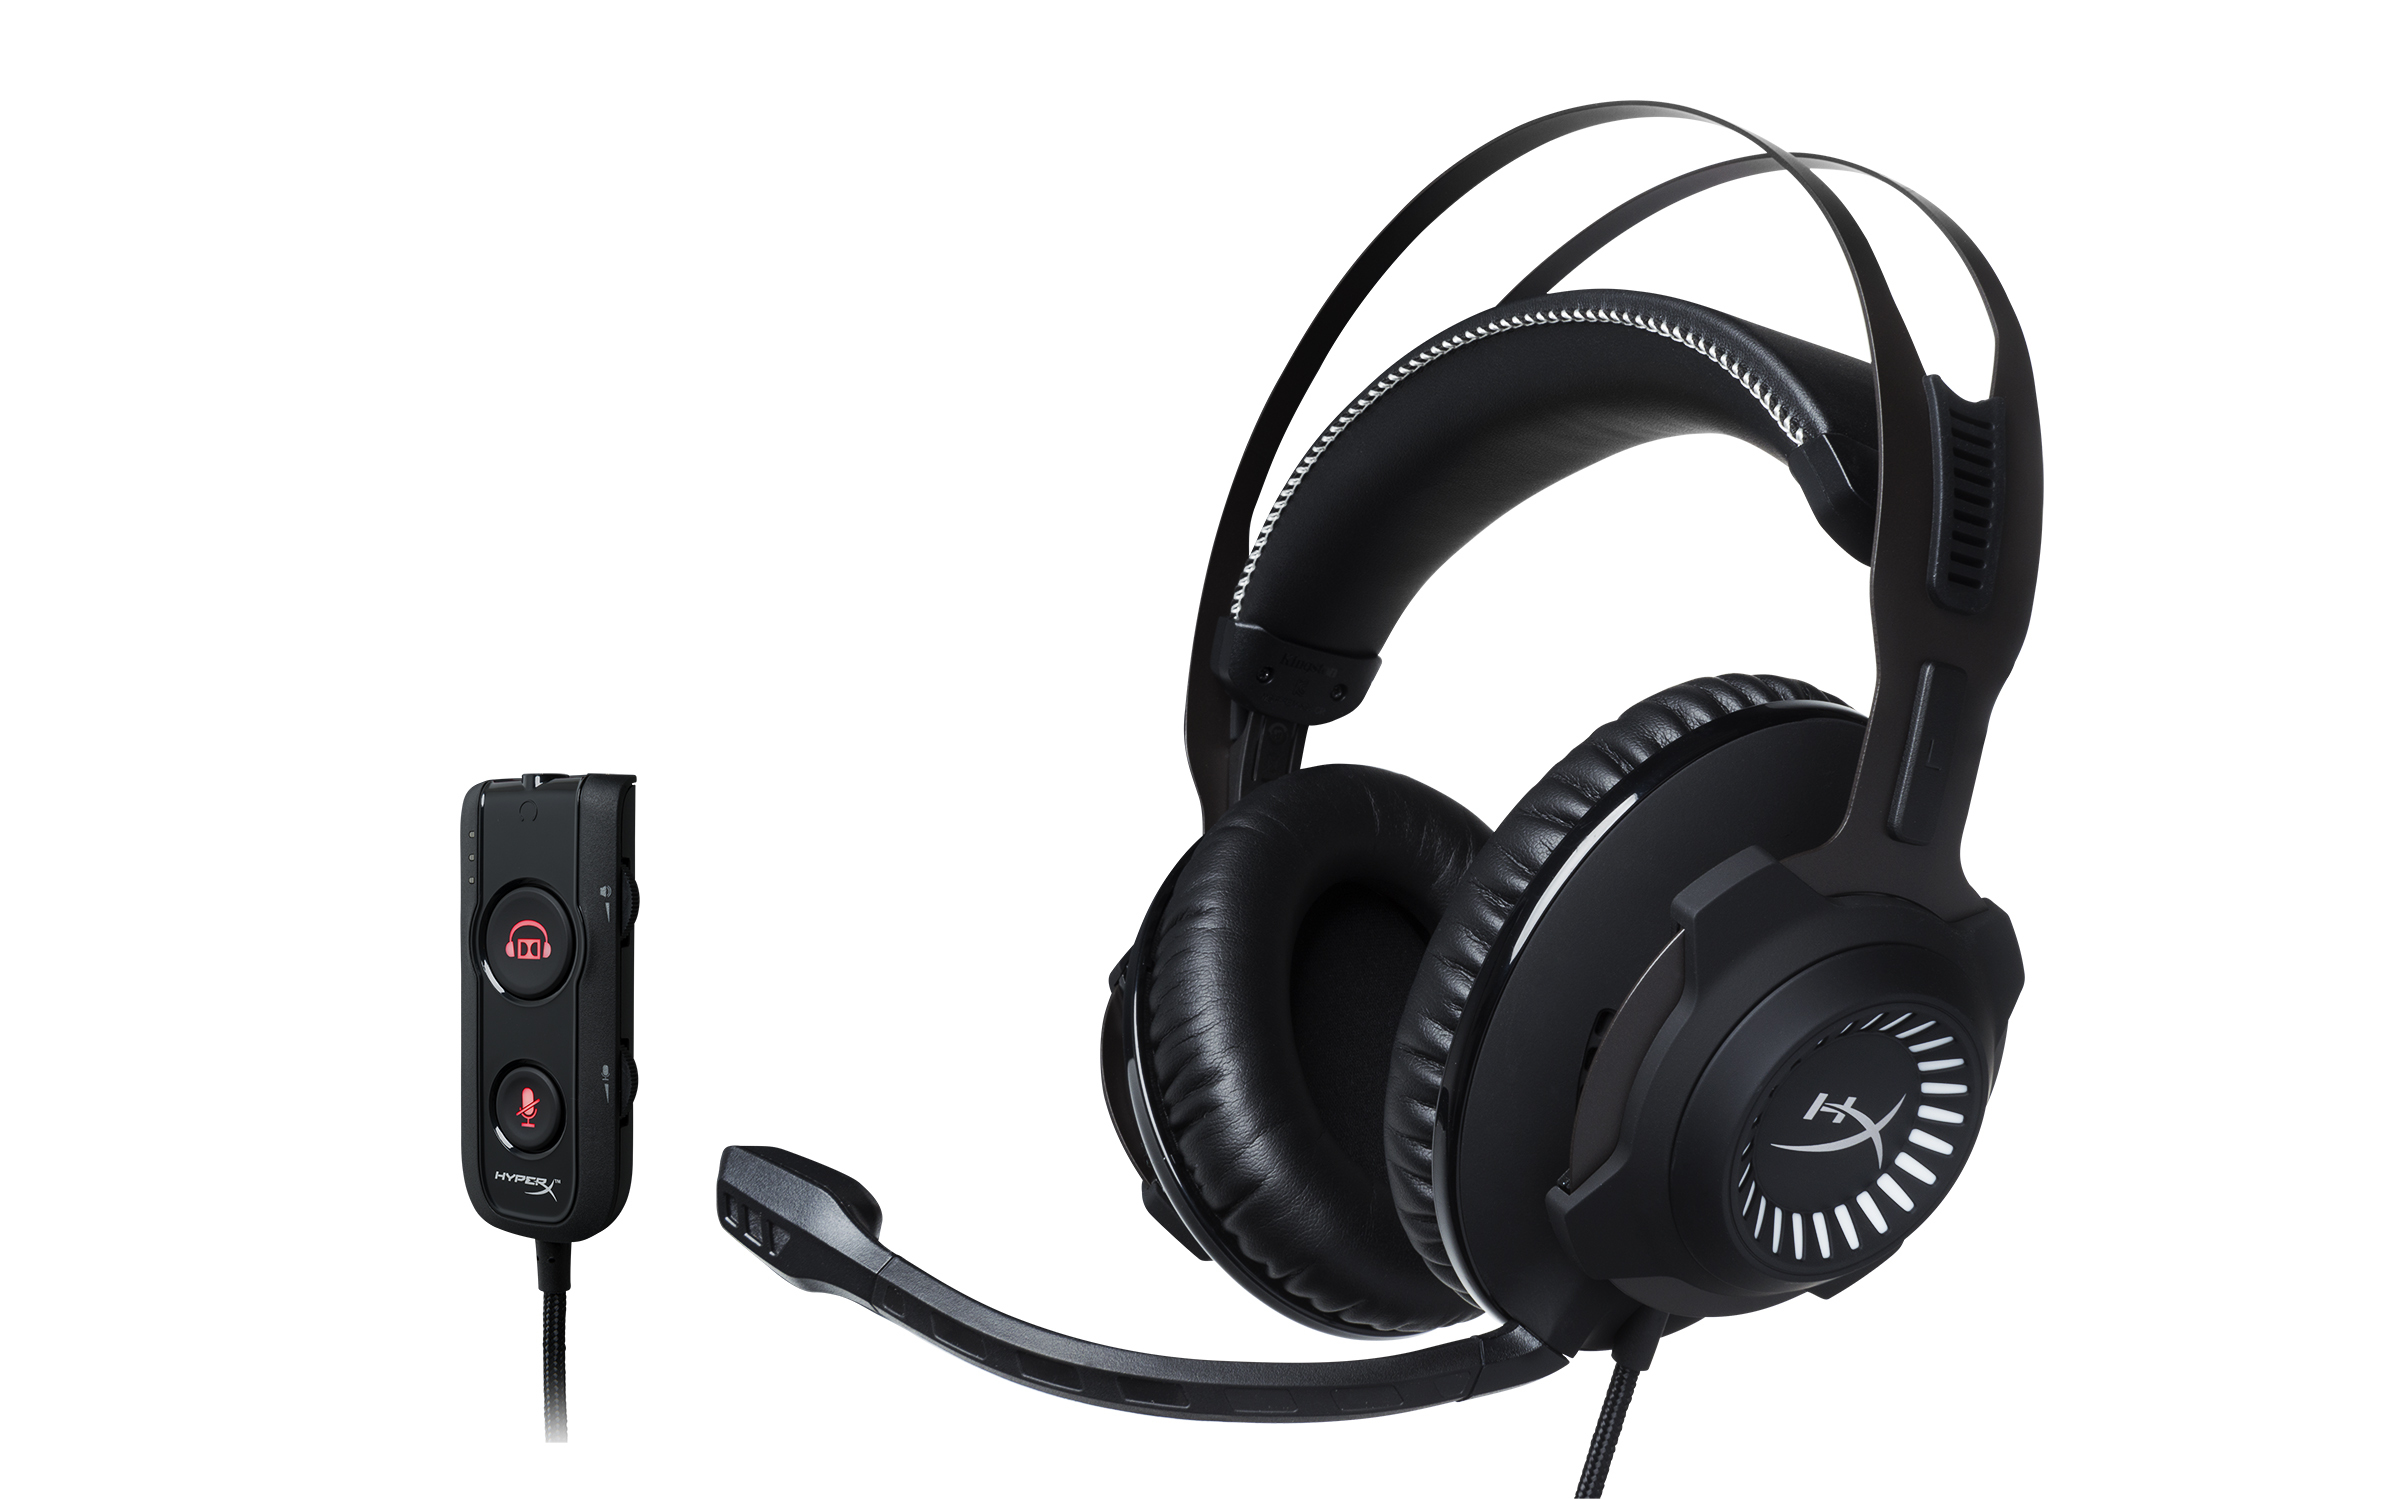 HyperX Cloud Revolver S gaming headset is now shipping with plug and play Dolby Headphone surround sound. (Photo: Business Wire)